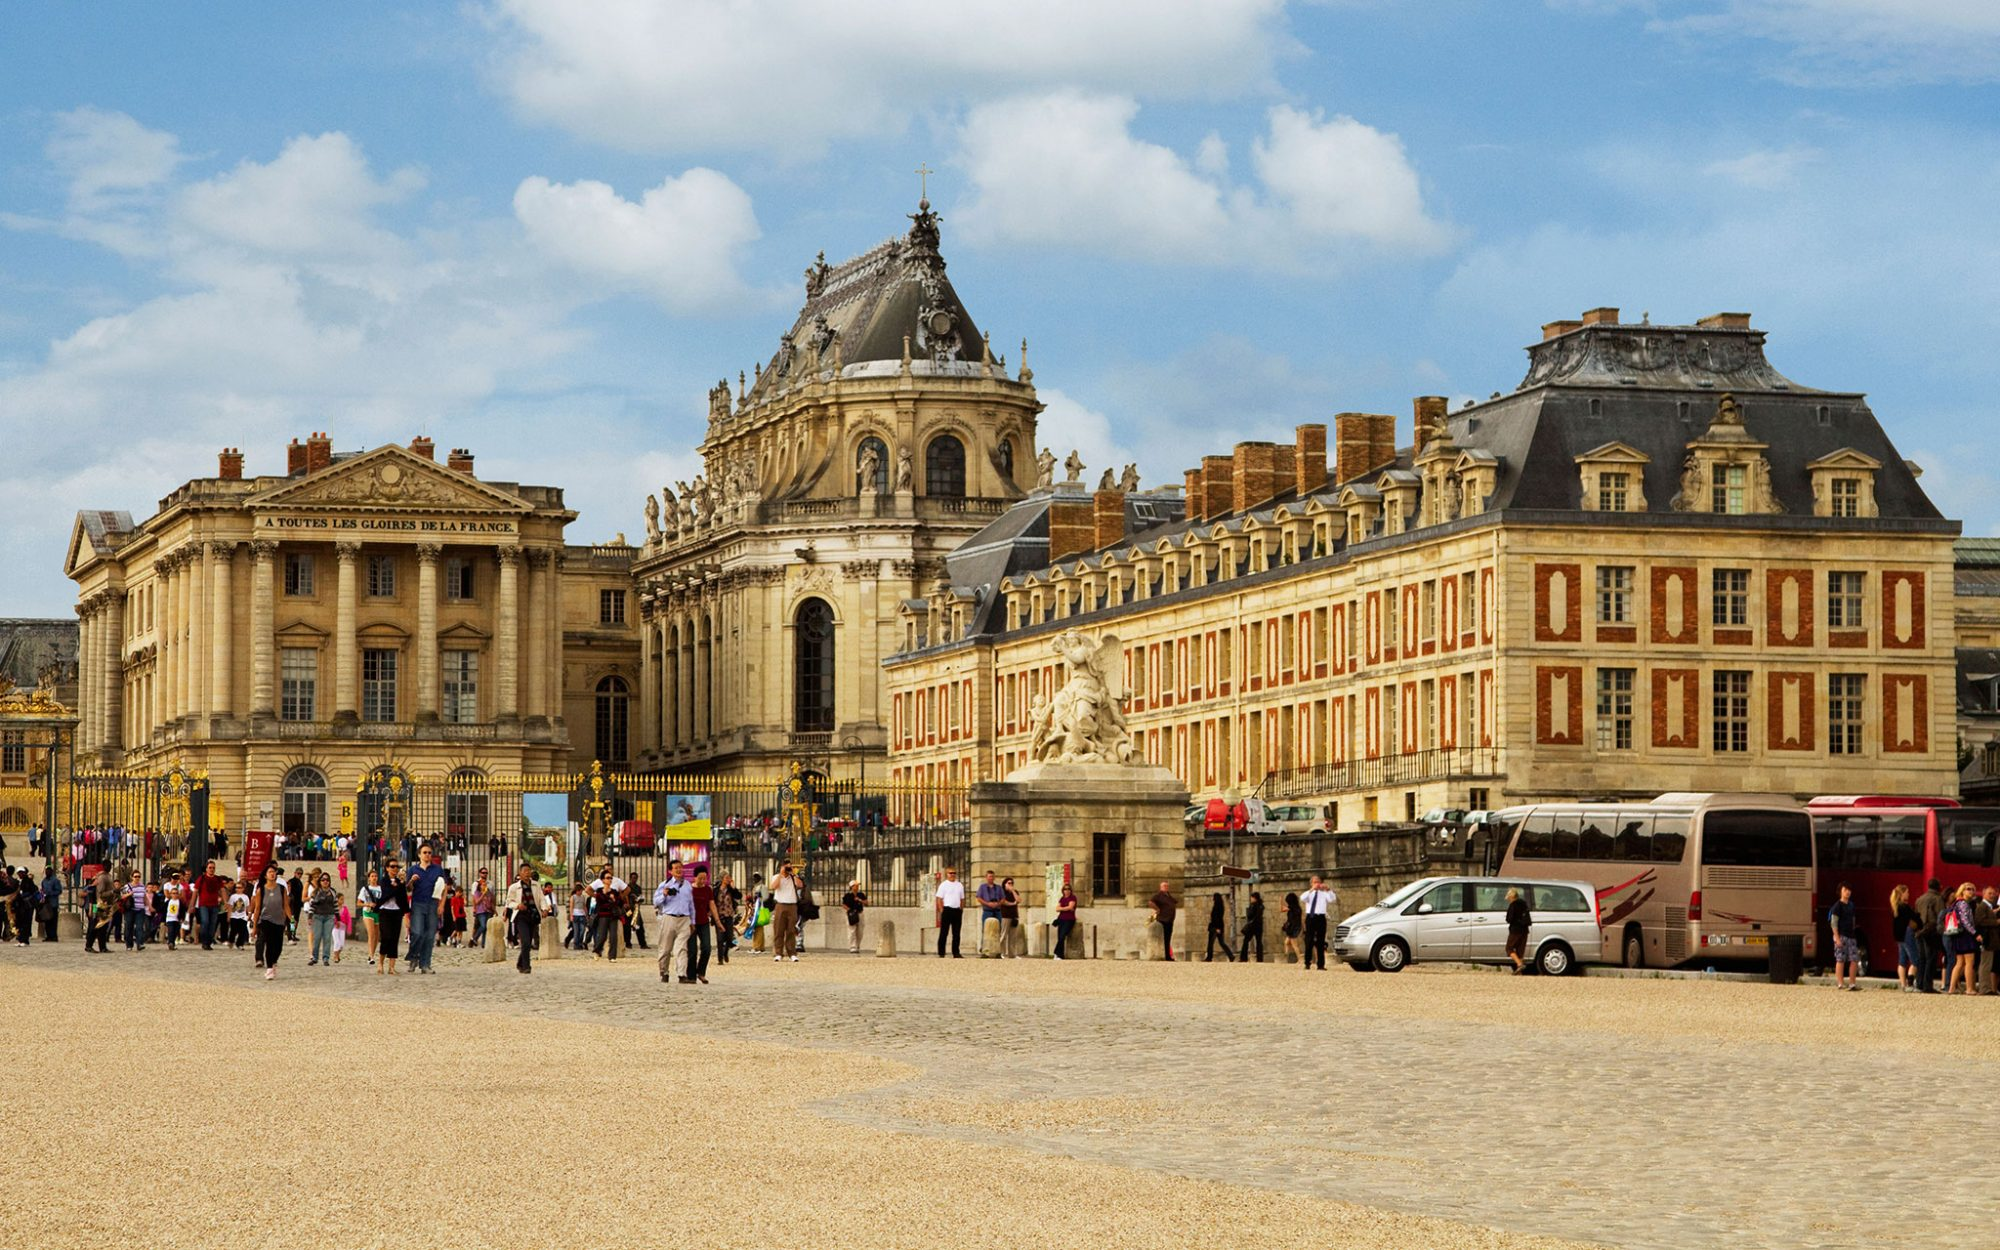 World's Most-Visited Castles: No. 4 Palace of Versailles, France